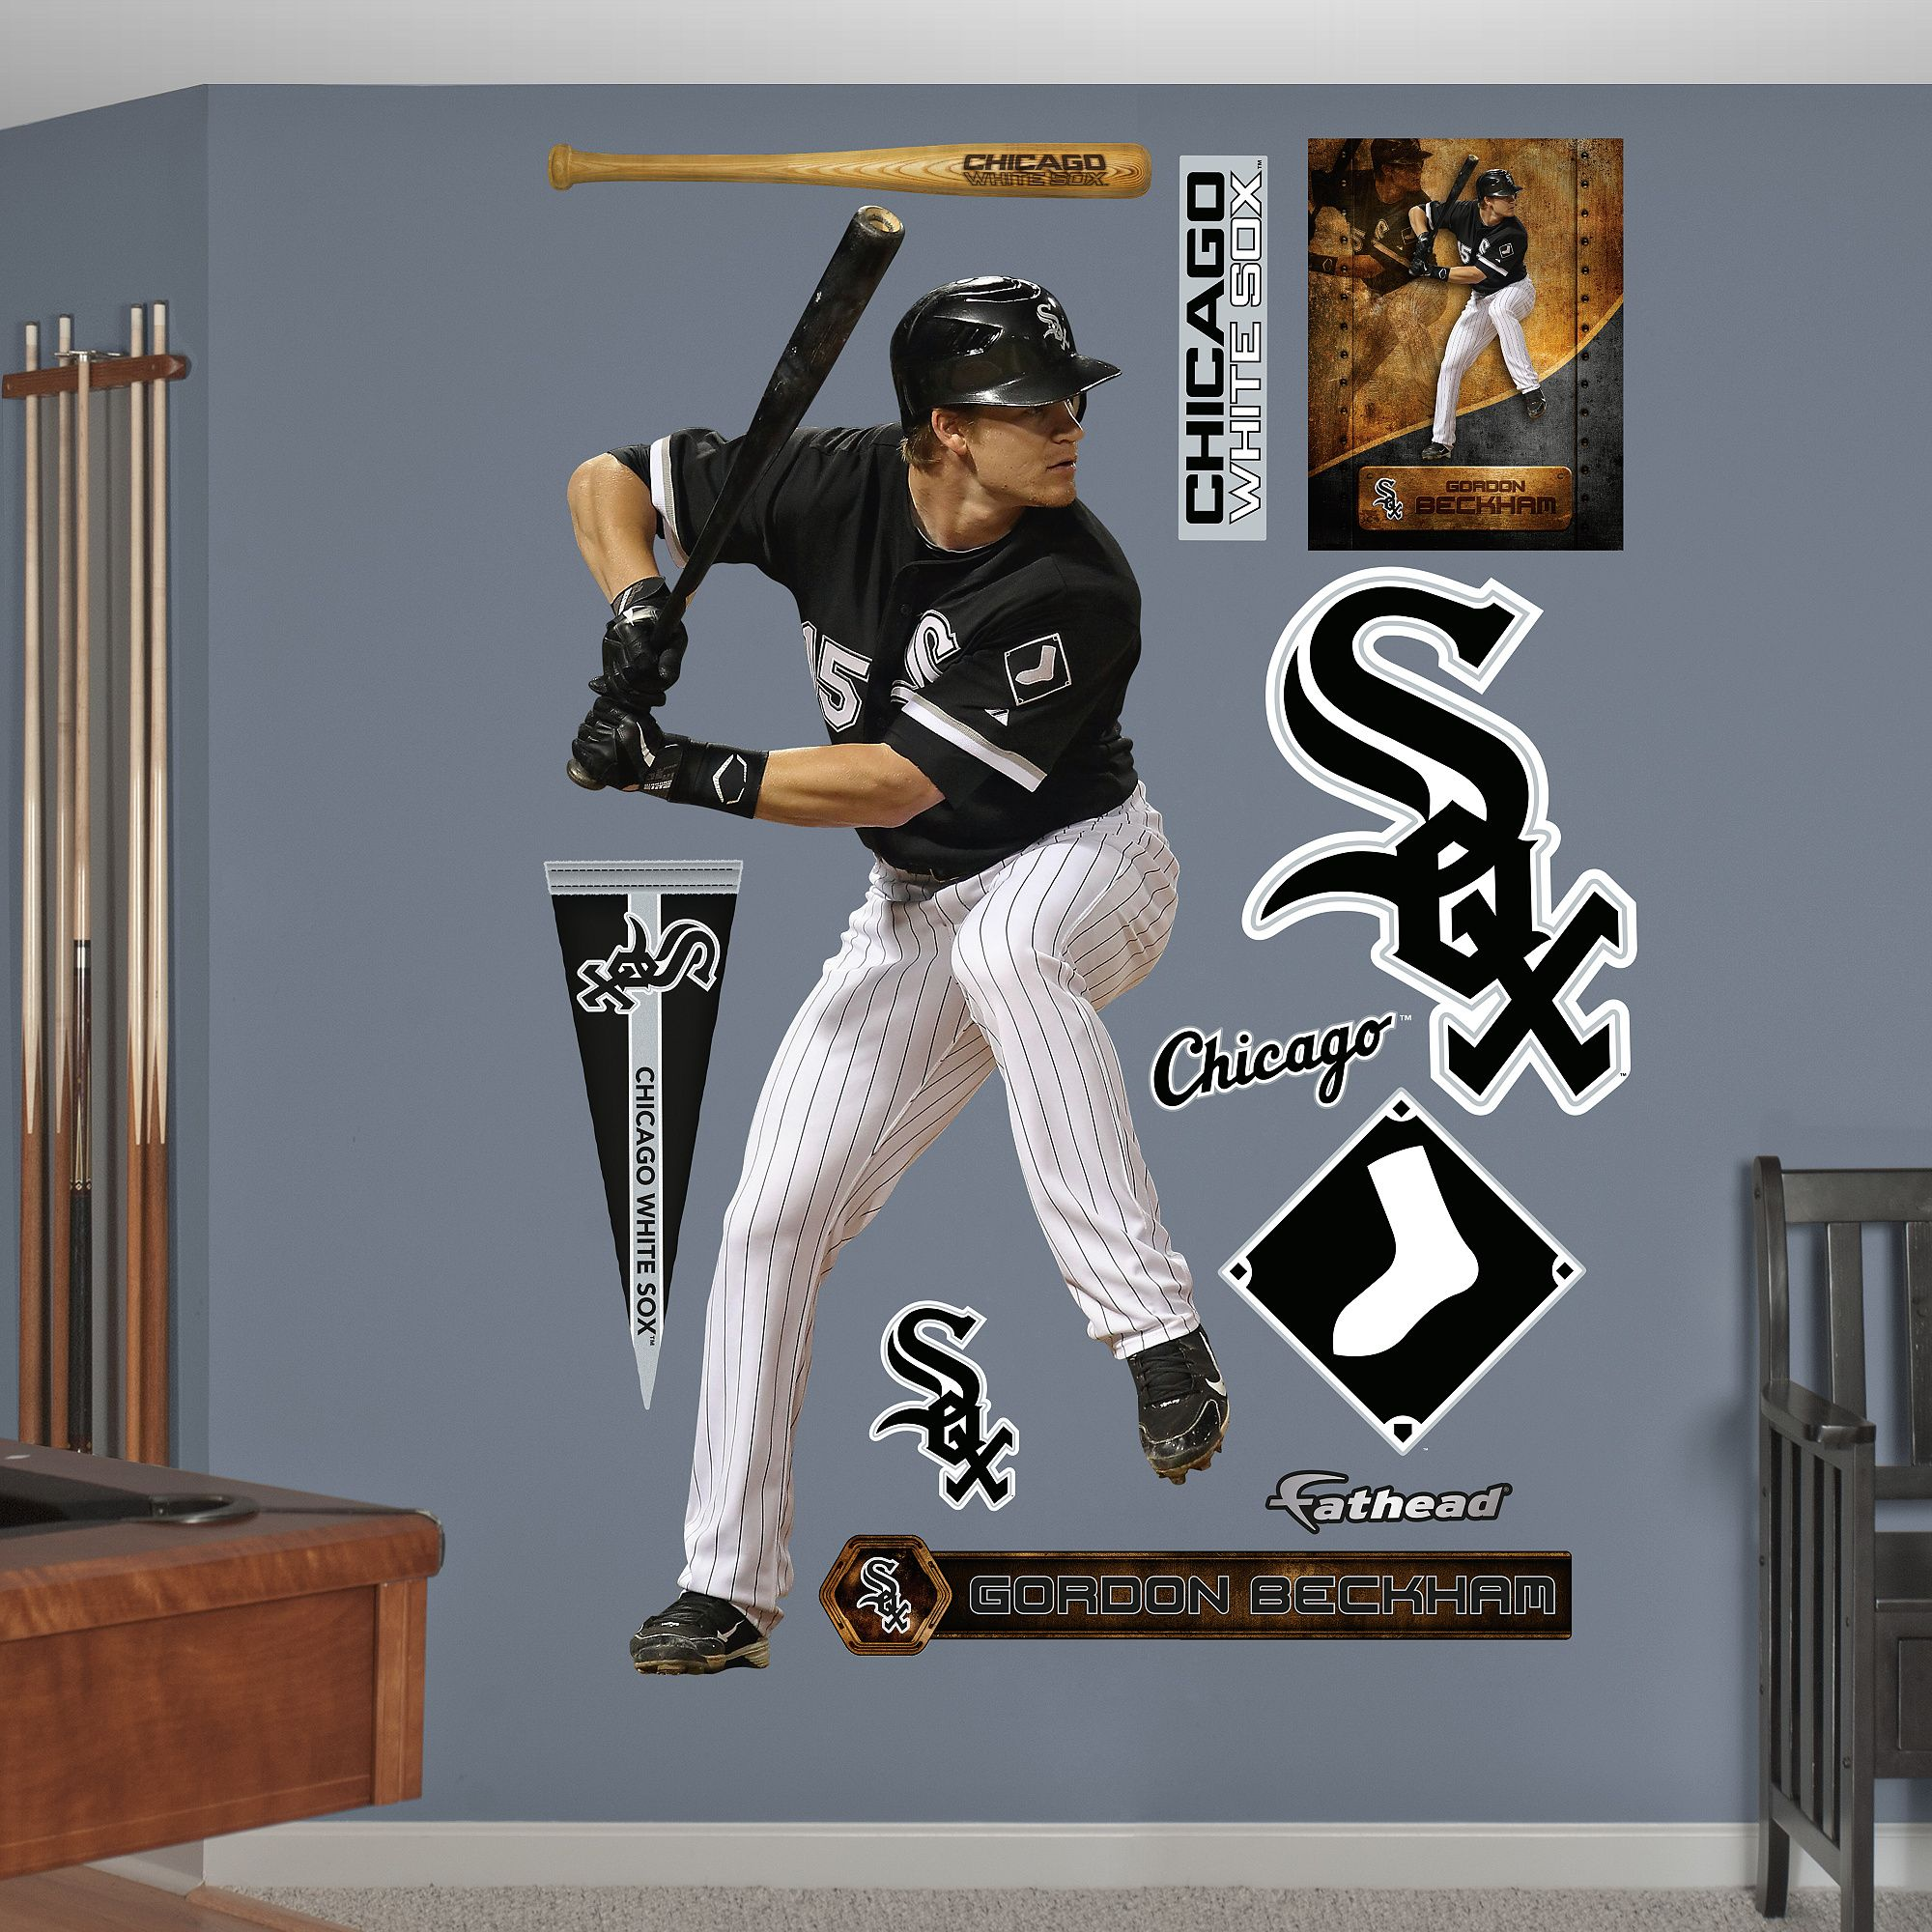 Chicago White Sox Fathead Wall Decals & More - Shop